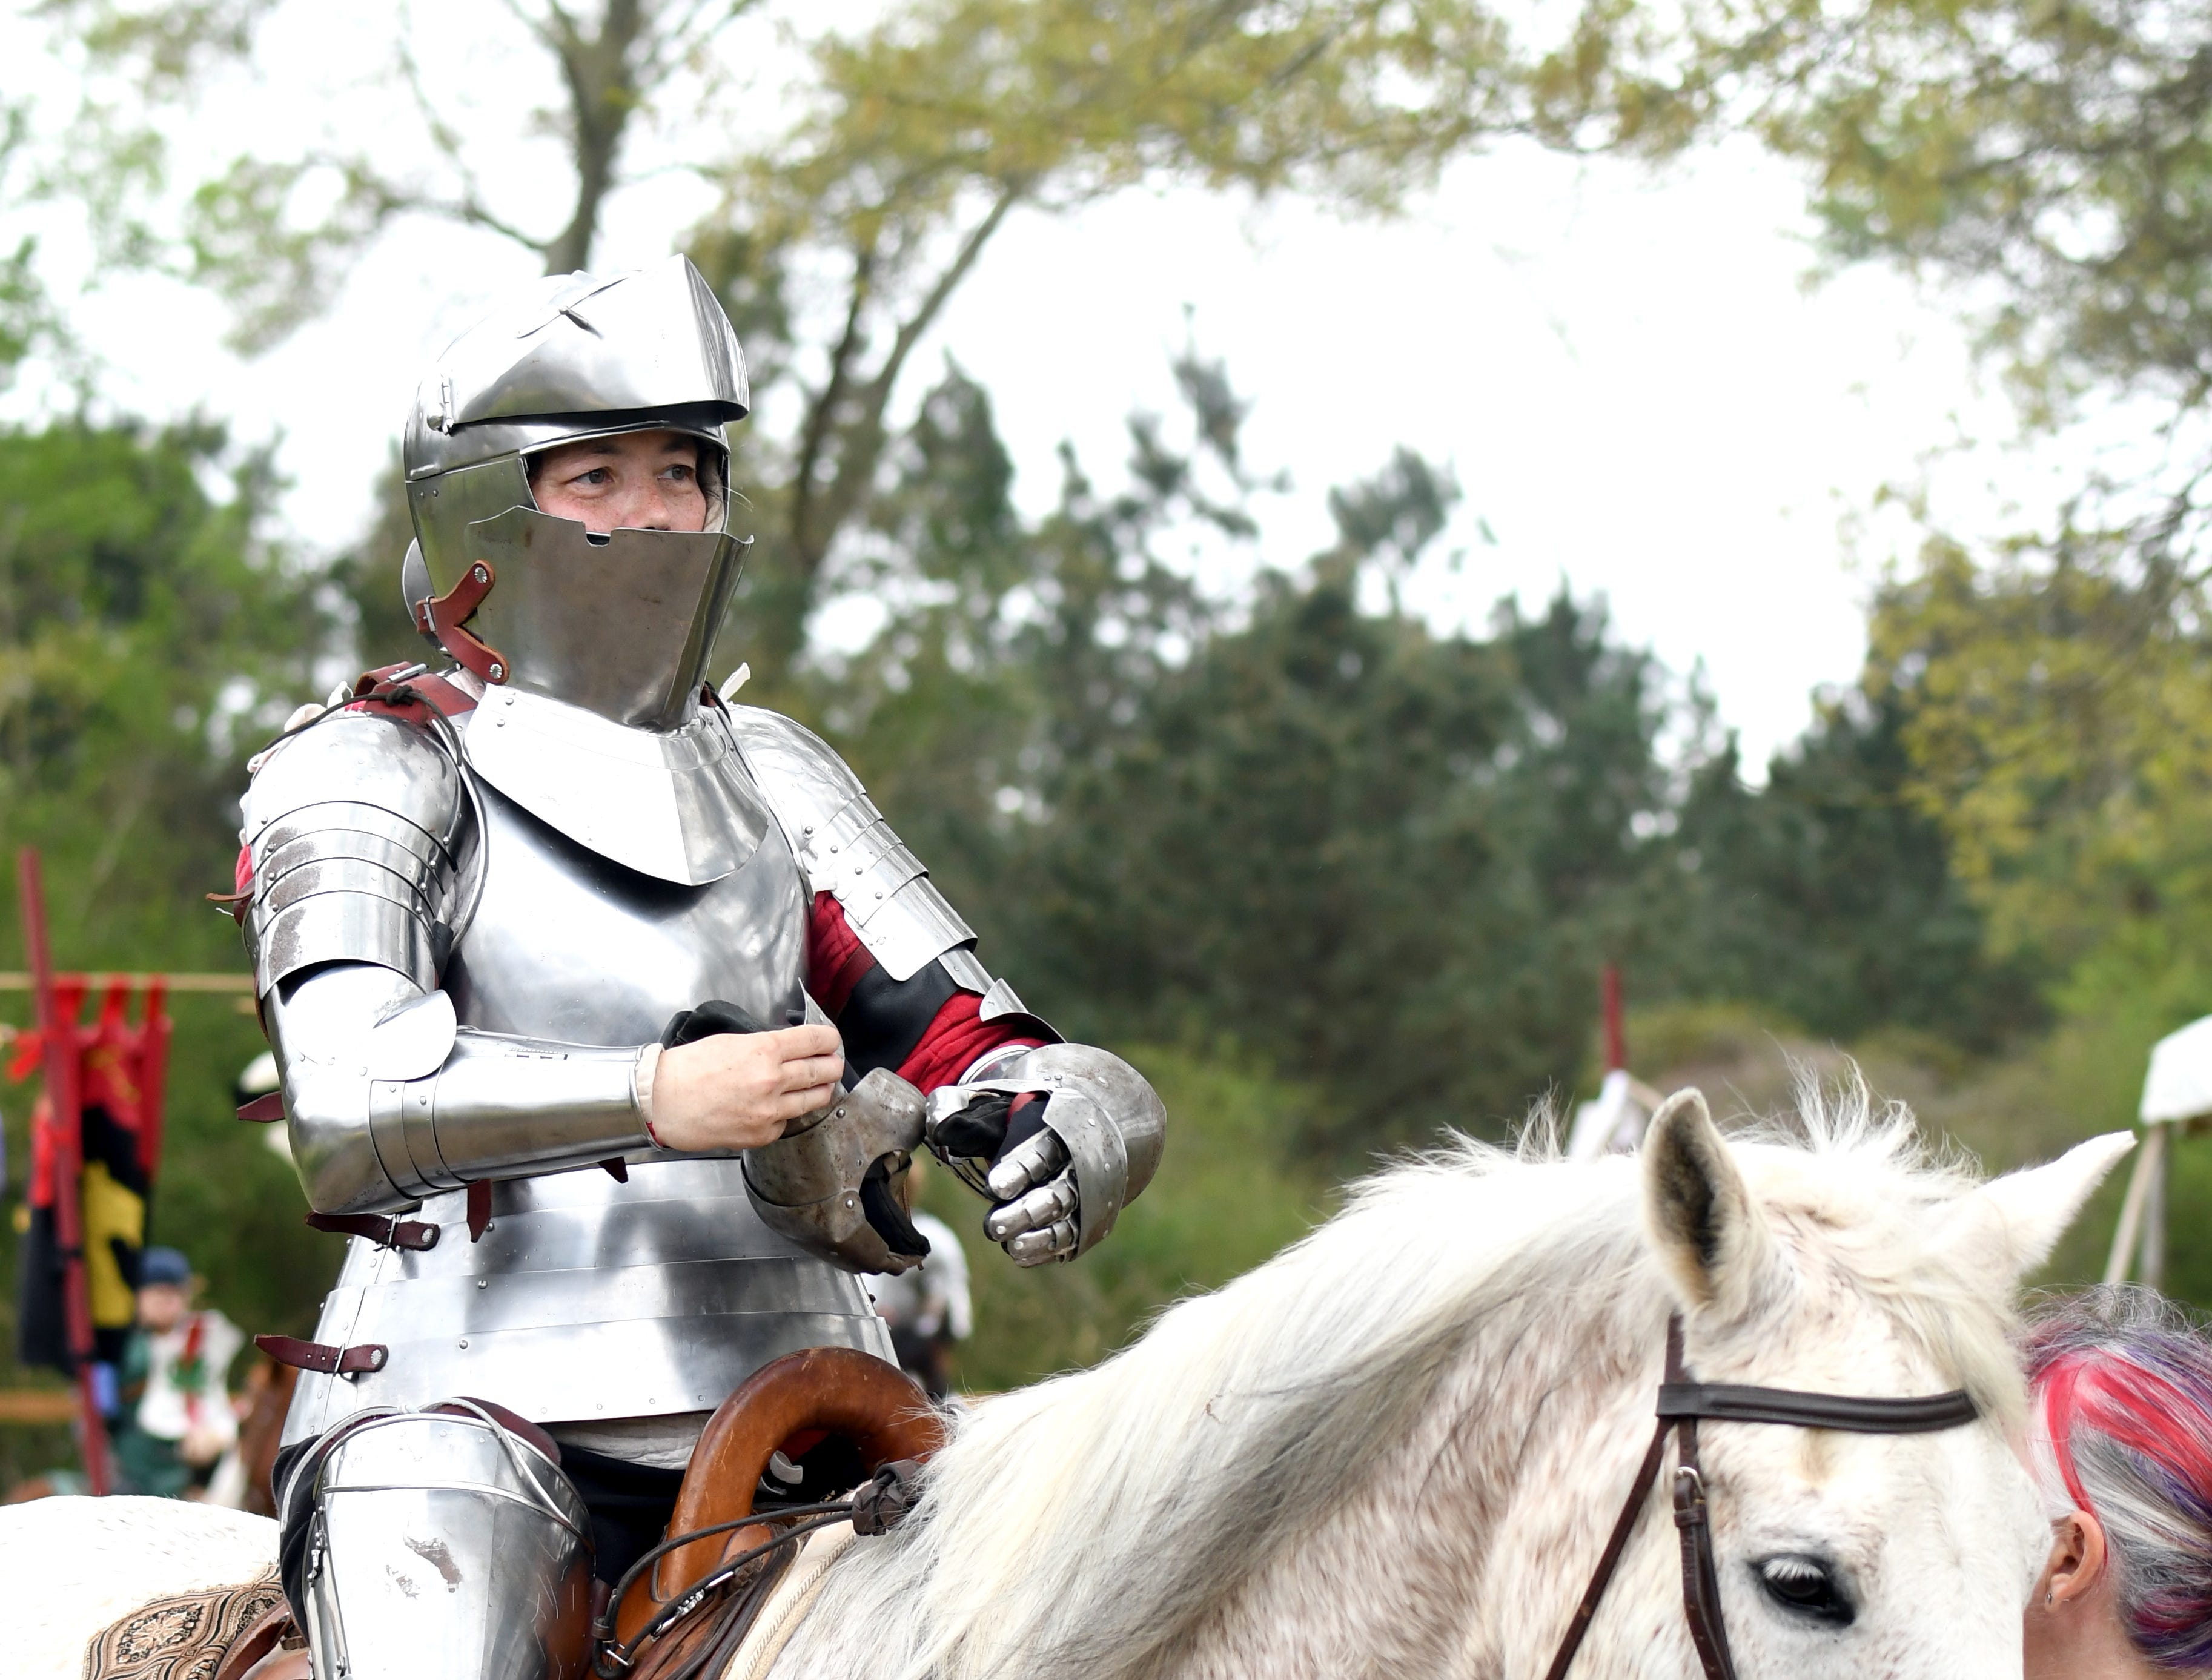 Residents of the Gulf Wars practice their jousting at King's Arrow Ranch in Lumberton on Monday, March 11, 2019.